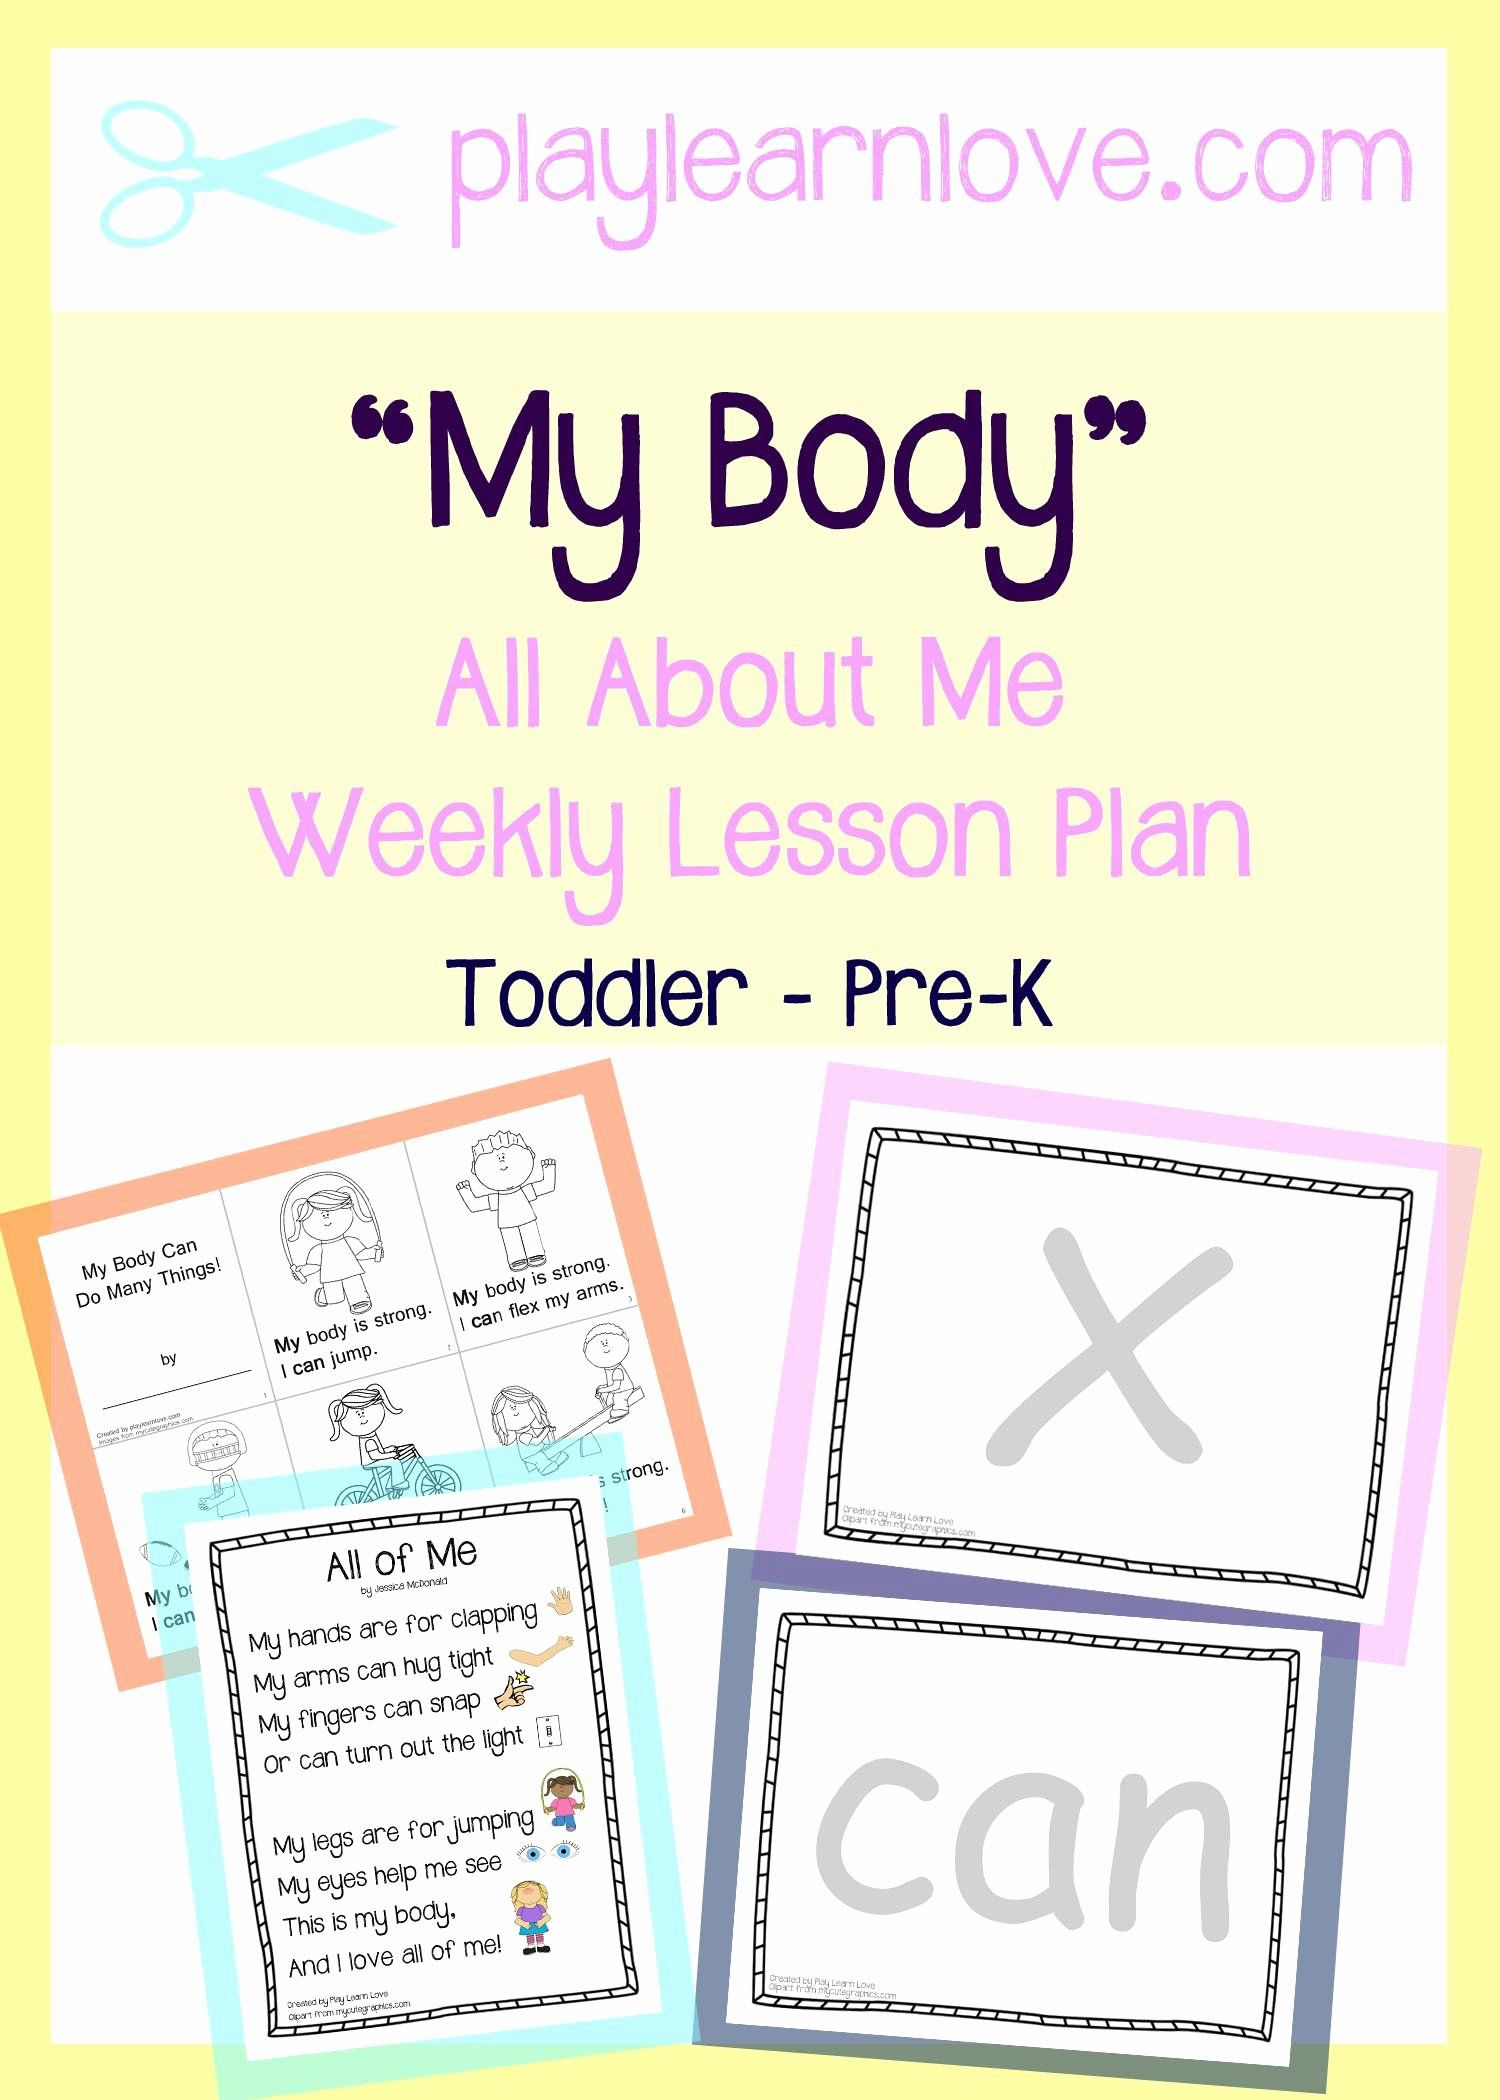 Lesson Plans For Toddlers Inspirational All About Me My Body Lesson Plan From Play Lear Lesson Plans For Toddlers All About Me Preschool Preschool Lesson Plans [ 2100 x 1500 Pixel ]